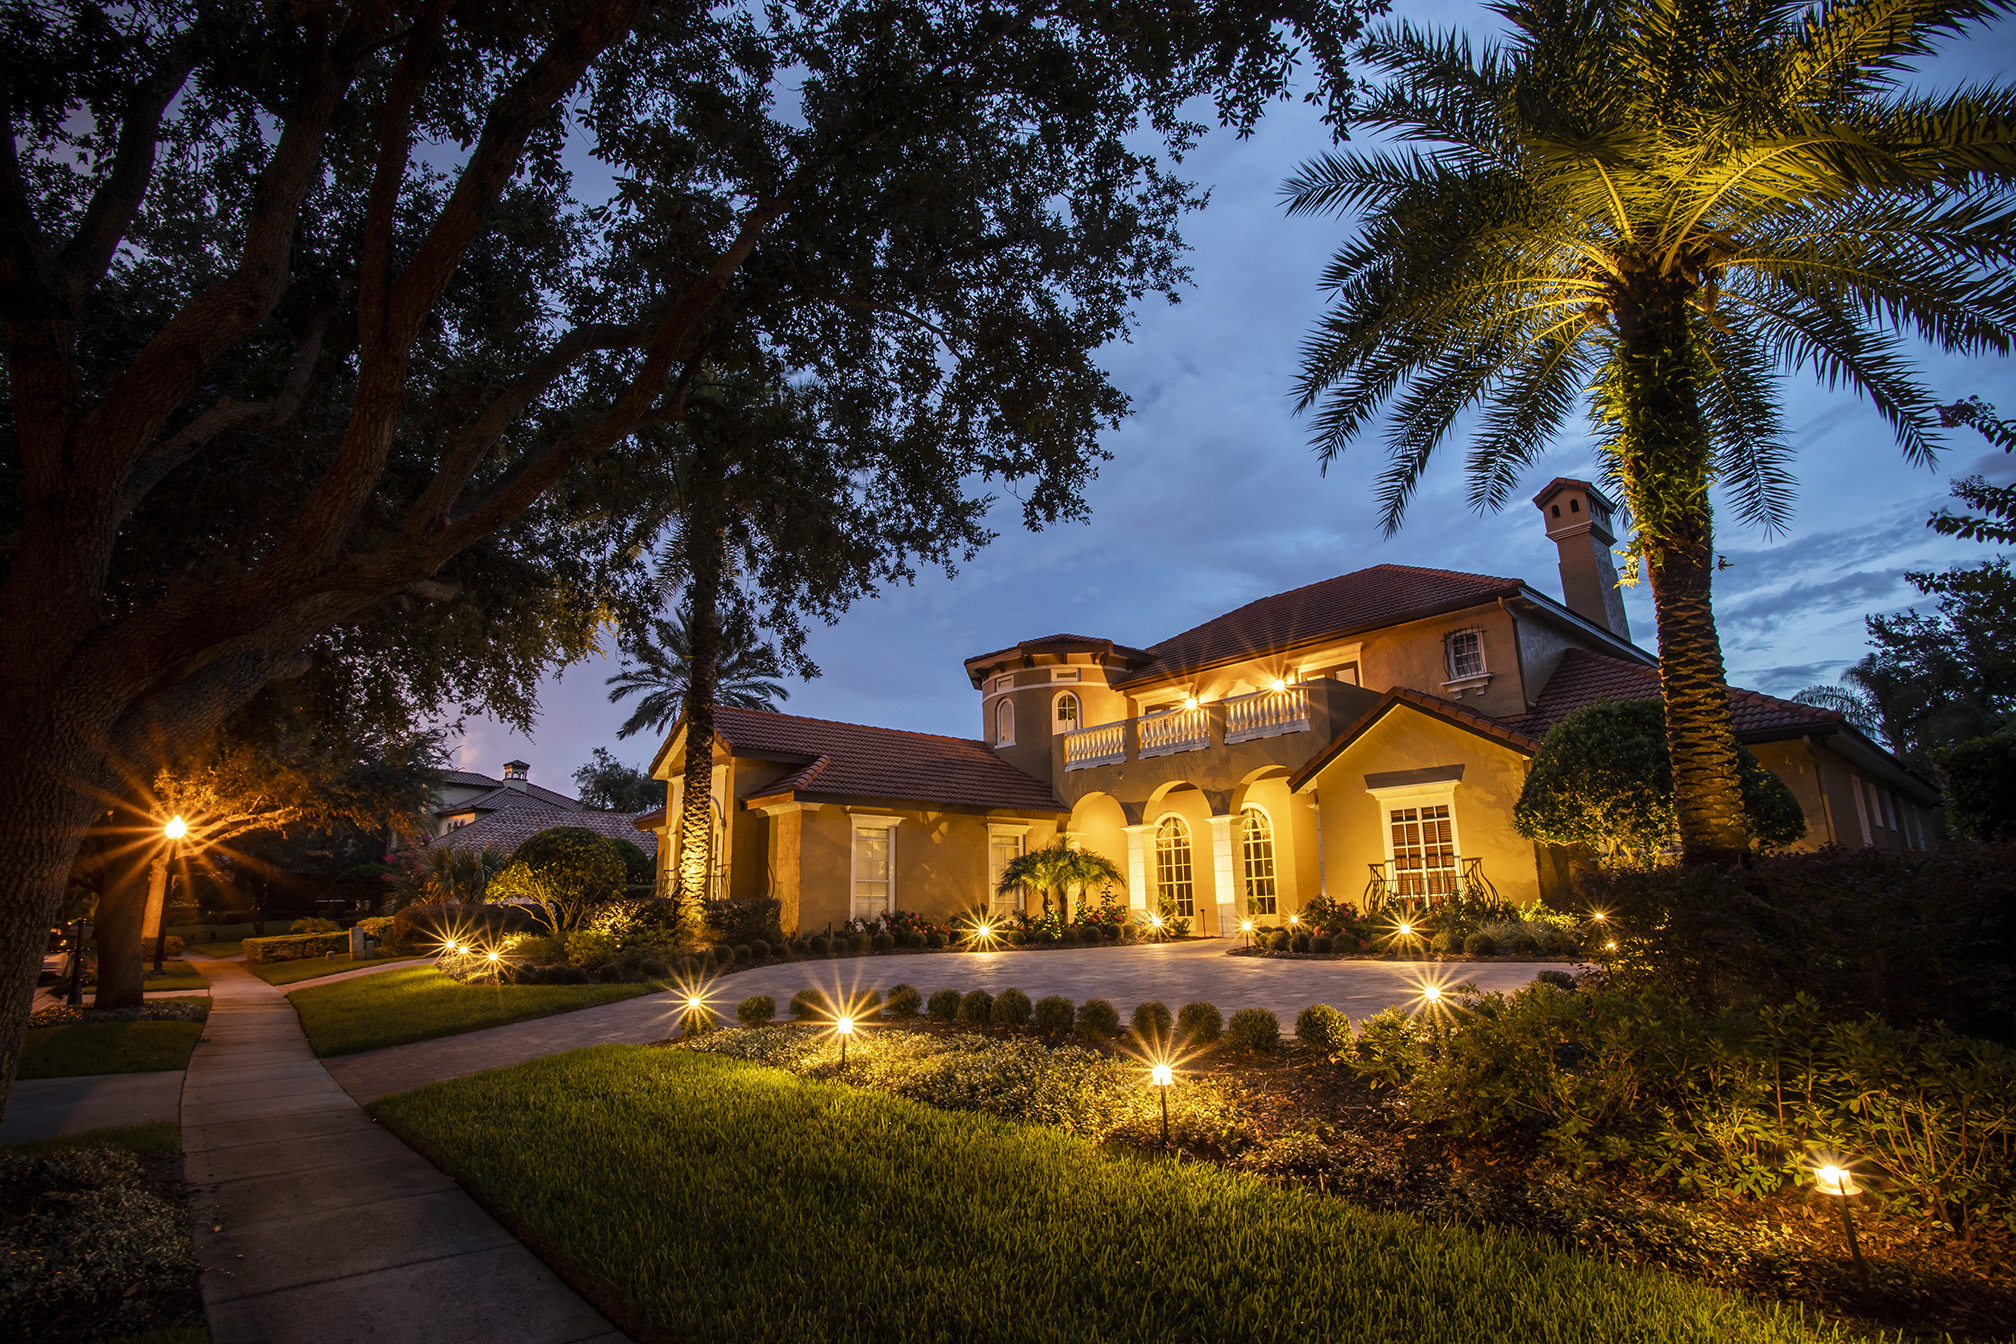 Central Florida home with beautiful landscape lighting